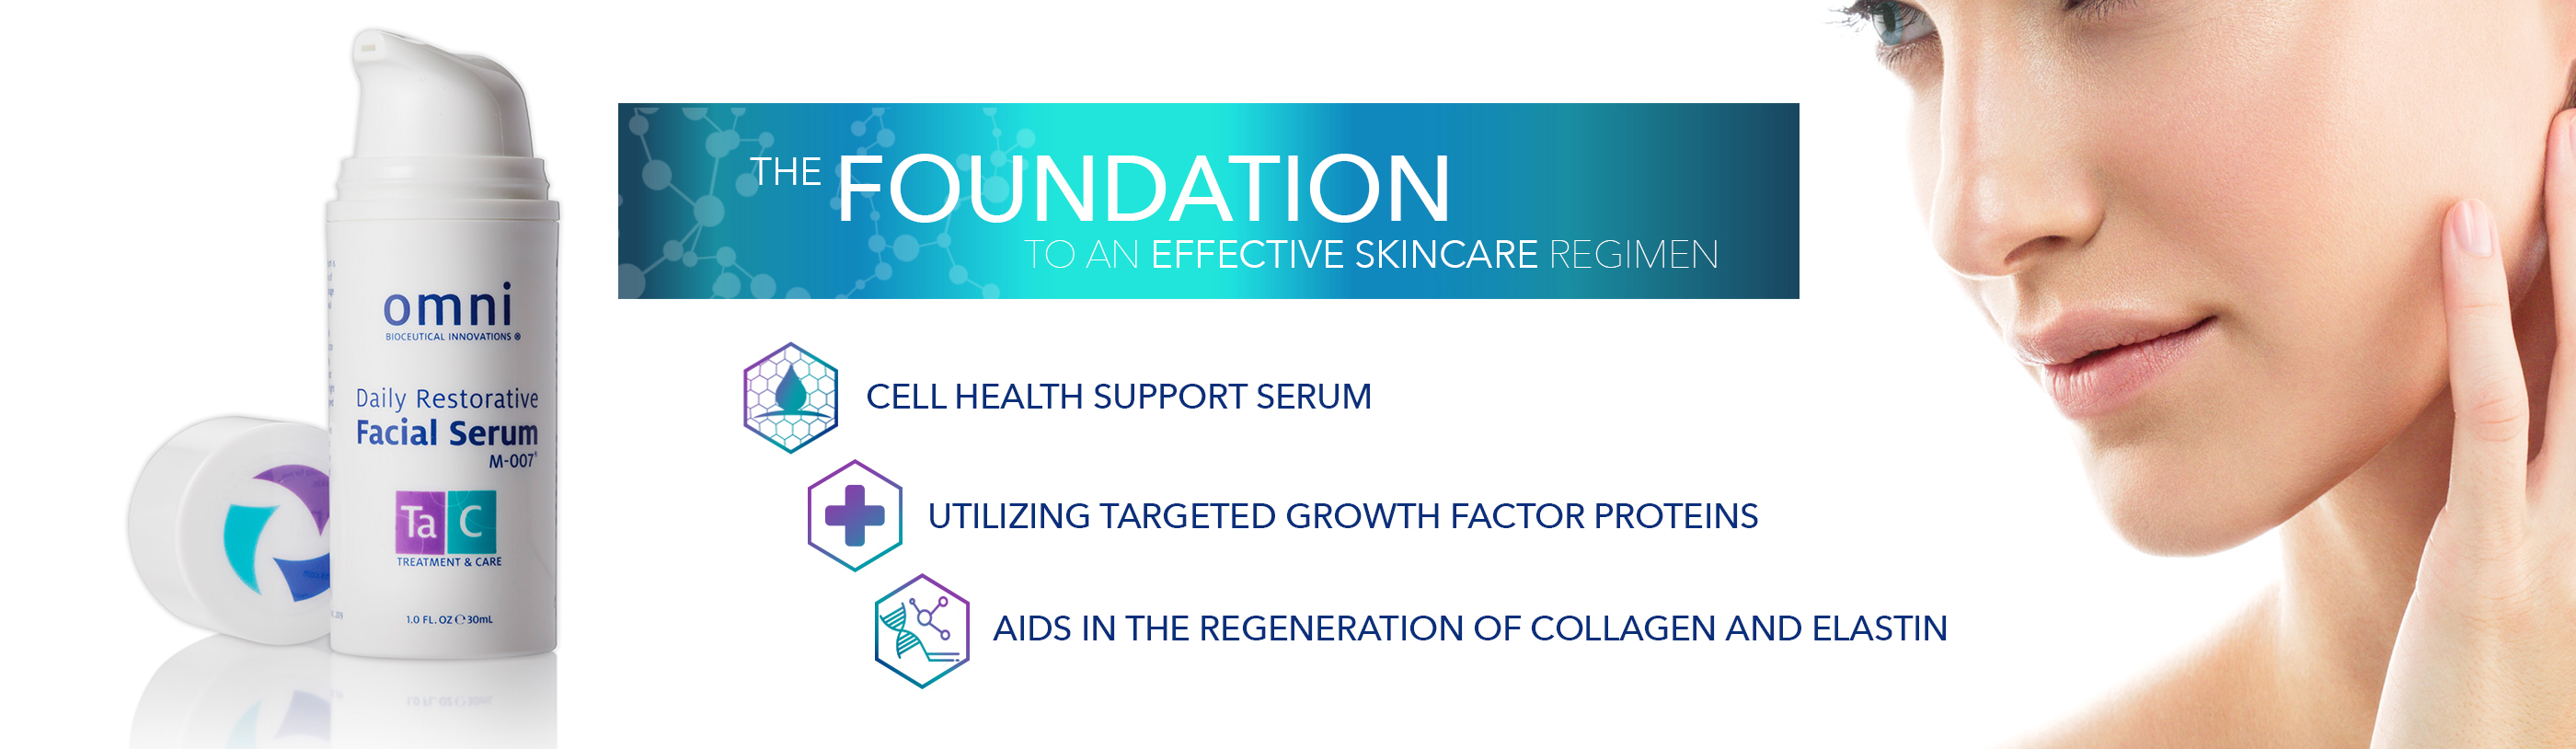 #loveomniskin, hfg, human growth factors, HPL, targeted, regeneration, facial serum, skin health solutions, hair health solutions, biome cleanser, clear skin, clean skin, m-007, boosting, treatment and care, skin care, hair care, omni, collagen, elastin, rebuild, cell health support,